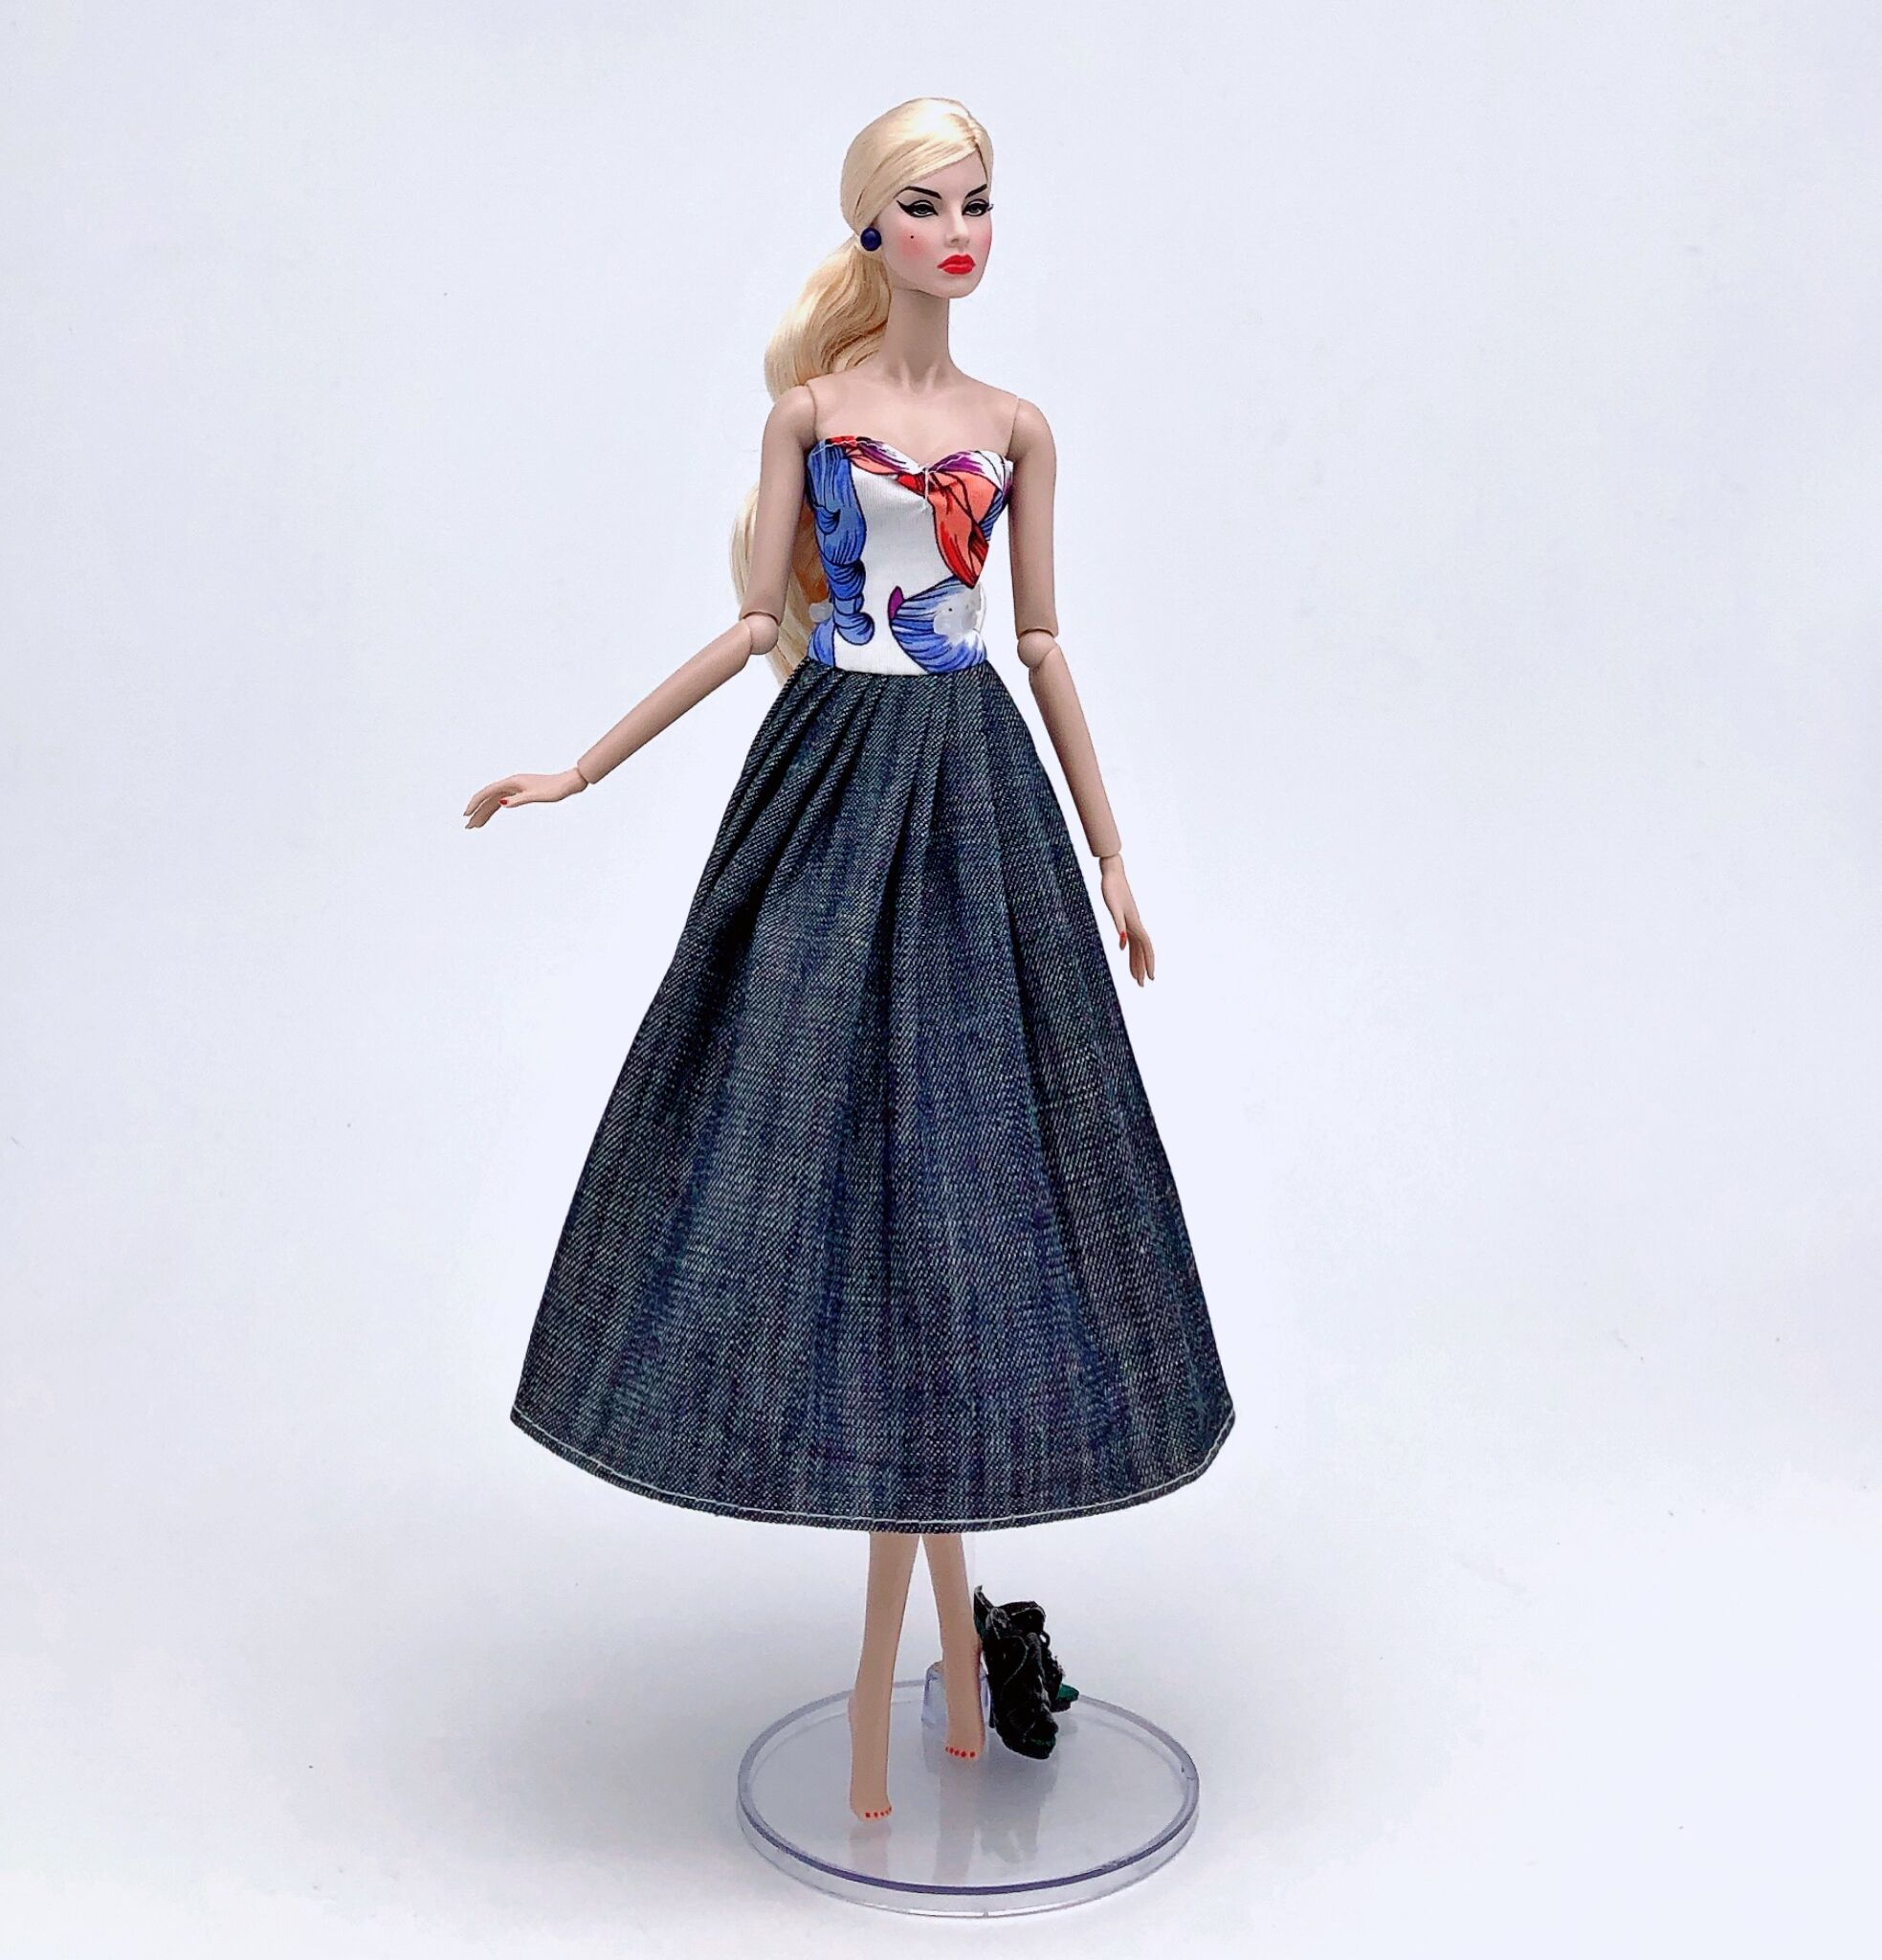 Casual Party Denim Wedding Dress Clothes For Barbie 1/6 Original Bjd Doll Accessories Costume Dressing Up House Child Toys Gift